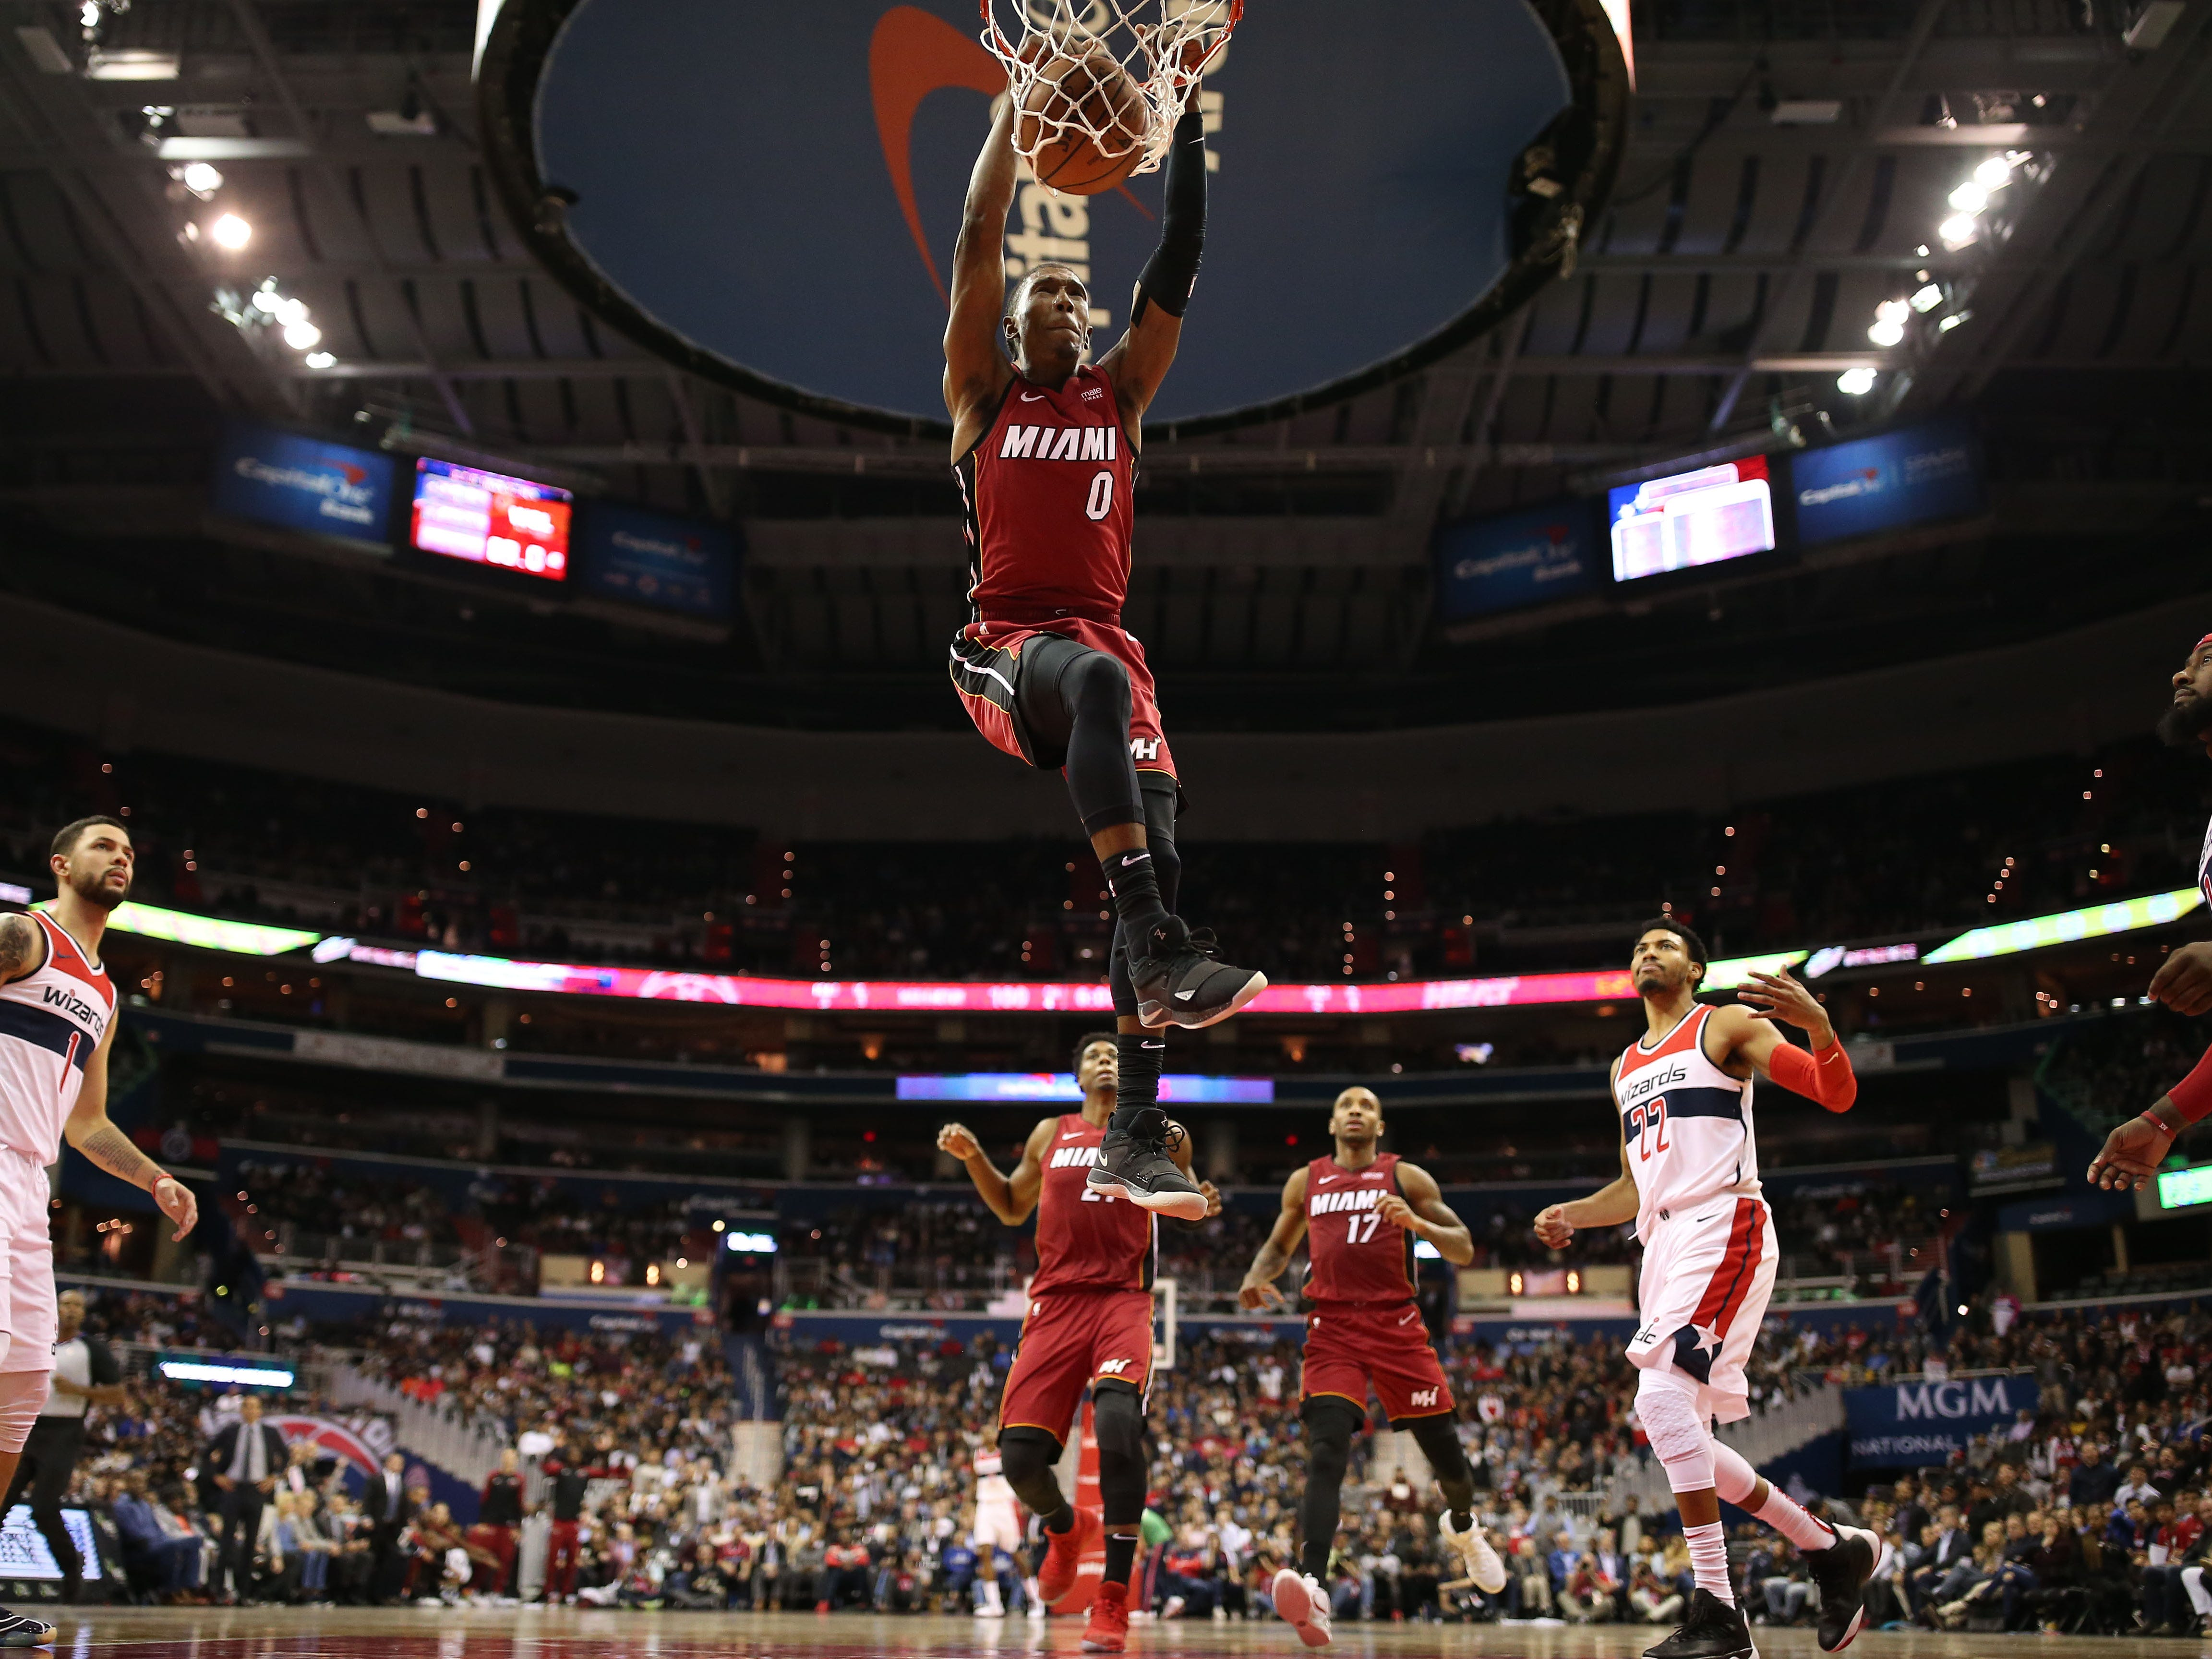 Oct. 18: Miami Heat forward Josh Richardson dunks the ball against the Washington Wizards in the second half at Capital One Arena.